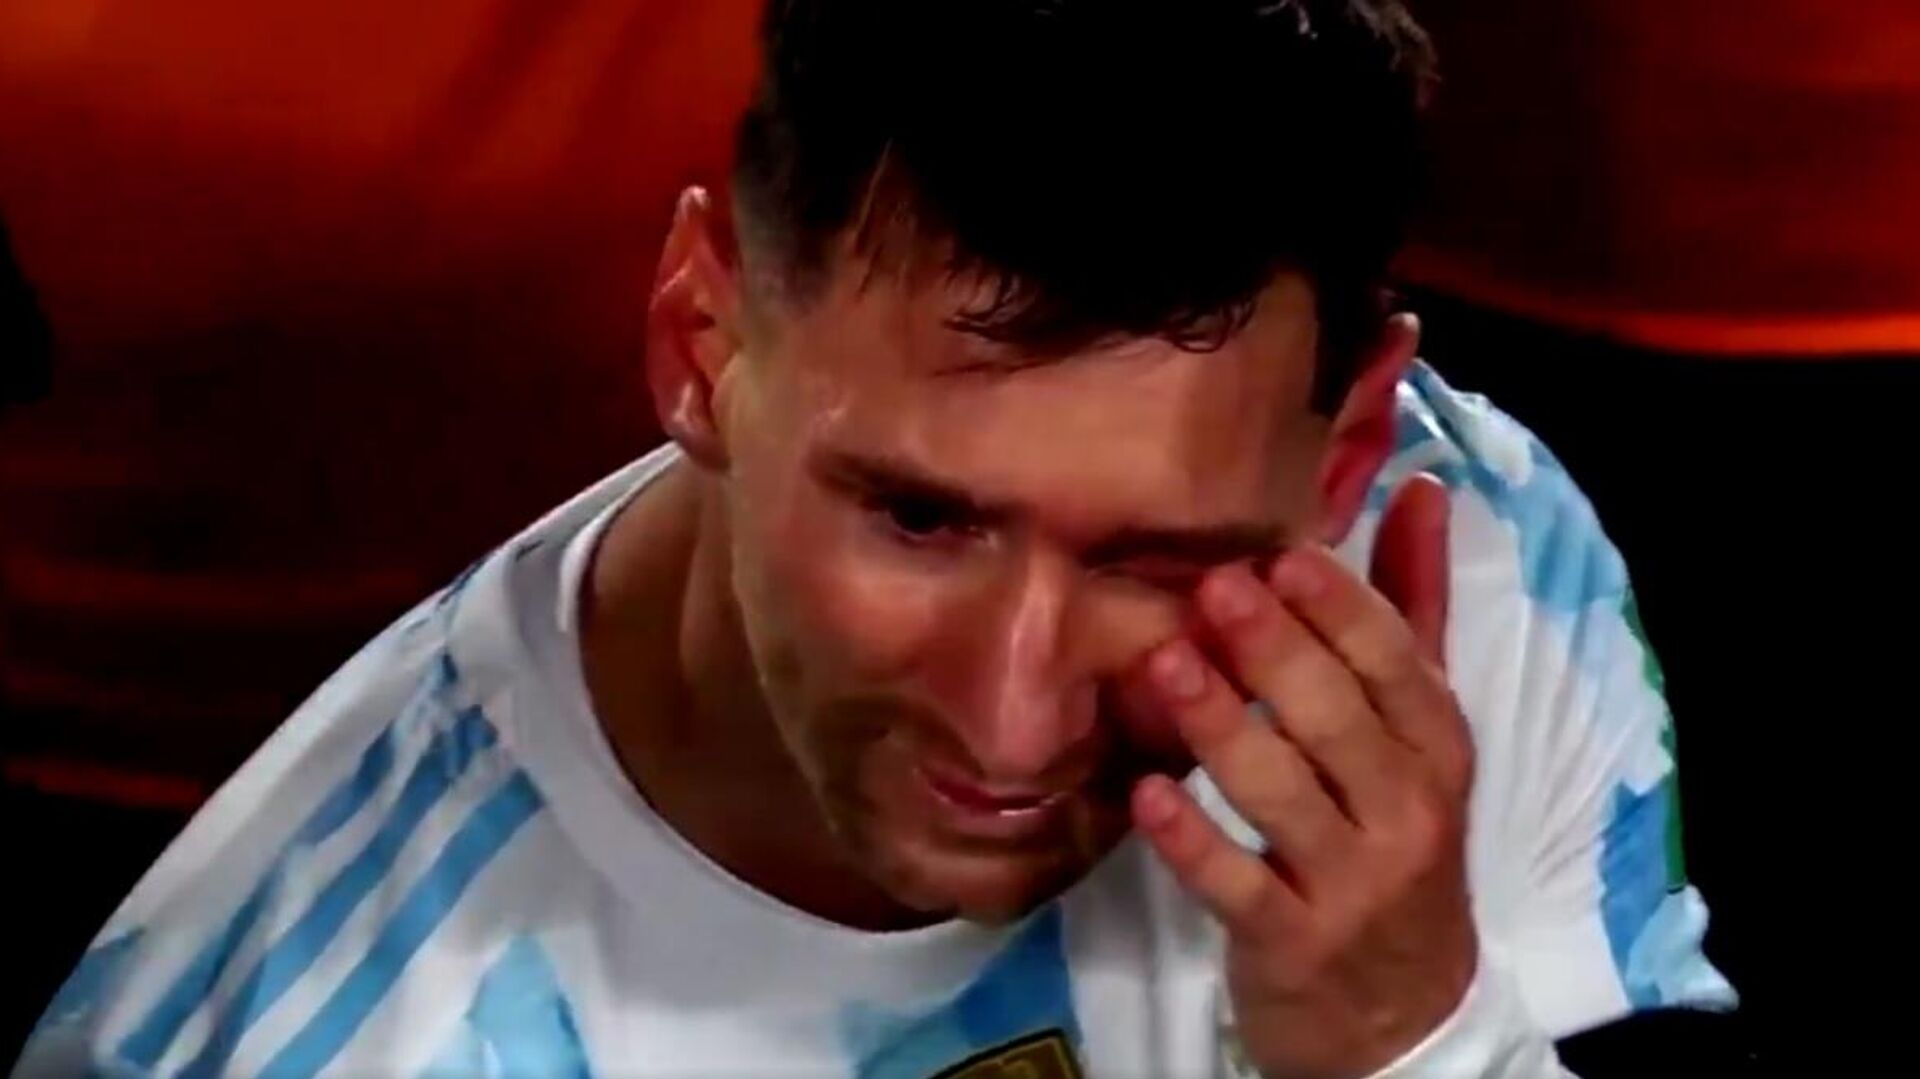 Leo Messi crying tears of joy after finally celebrating Copa America with Argentinian people - Sputnik International, 1920, 10.09.2021